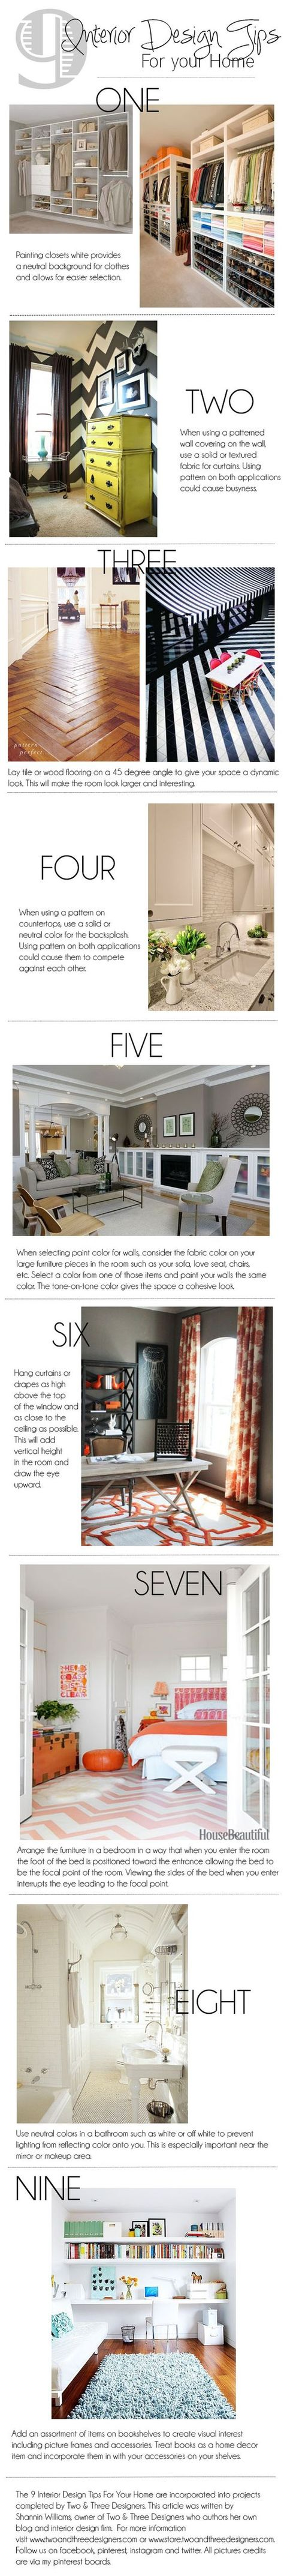 Interior Design Advice: Dou0027s And Donu0027ts Every Beginner Should Know |  Decorating, Interiors And Infographic